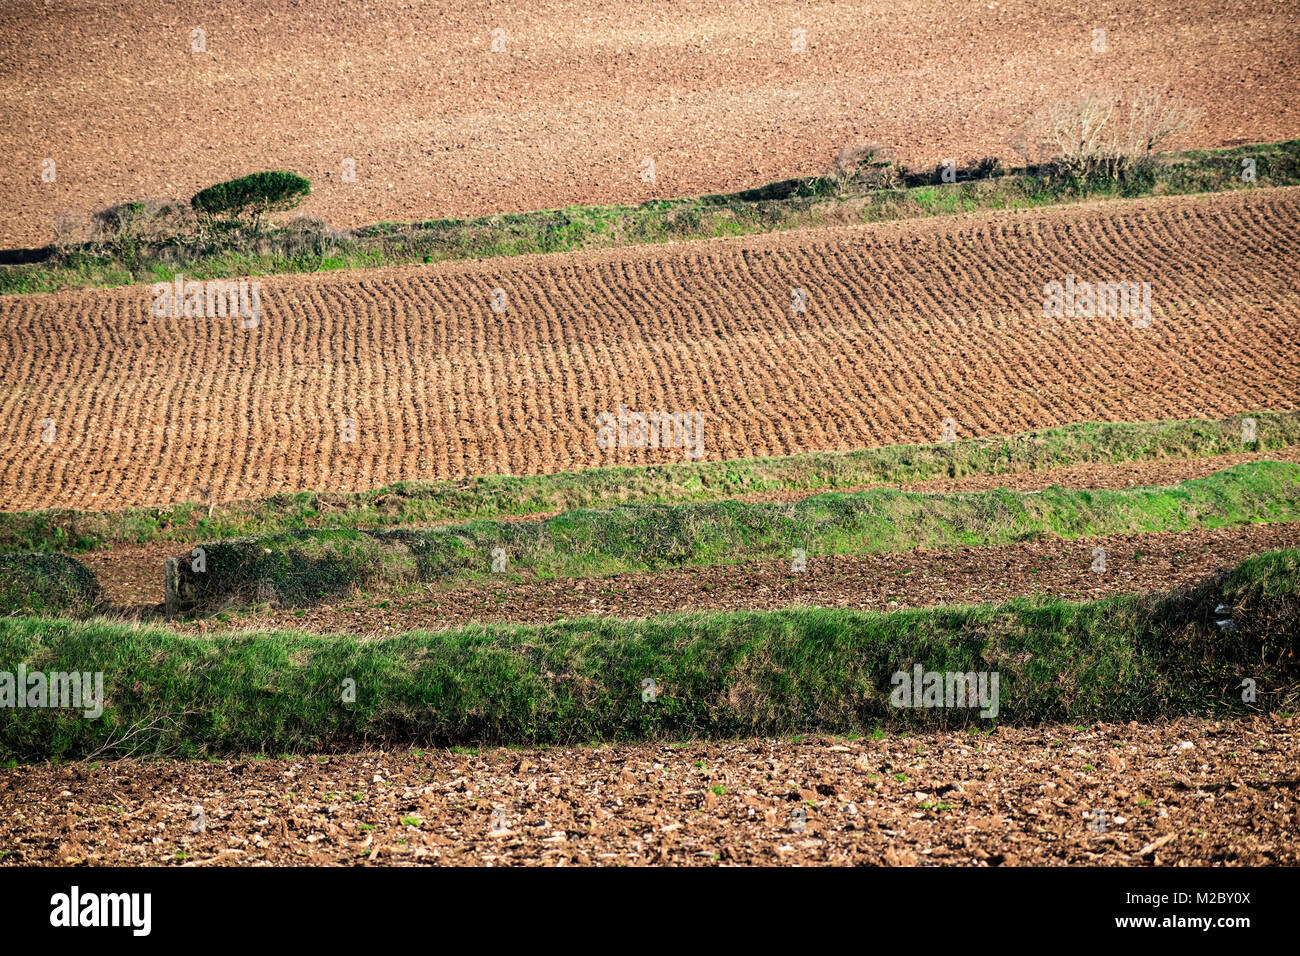 agriculture, farming cultivated fields prepared for planting crops, cornwall, uk. - Stock Image